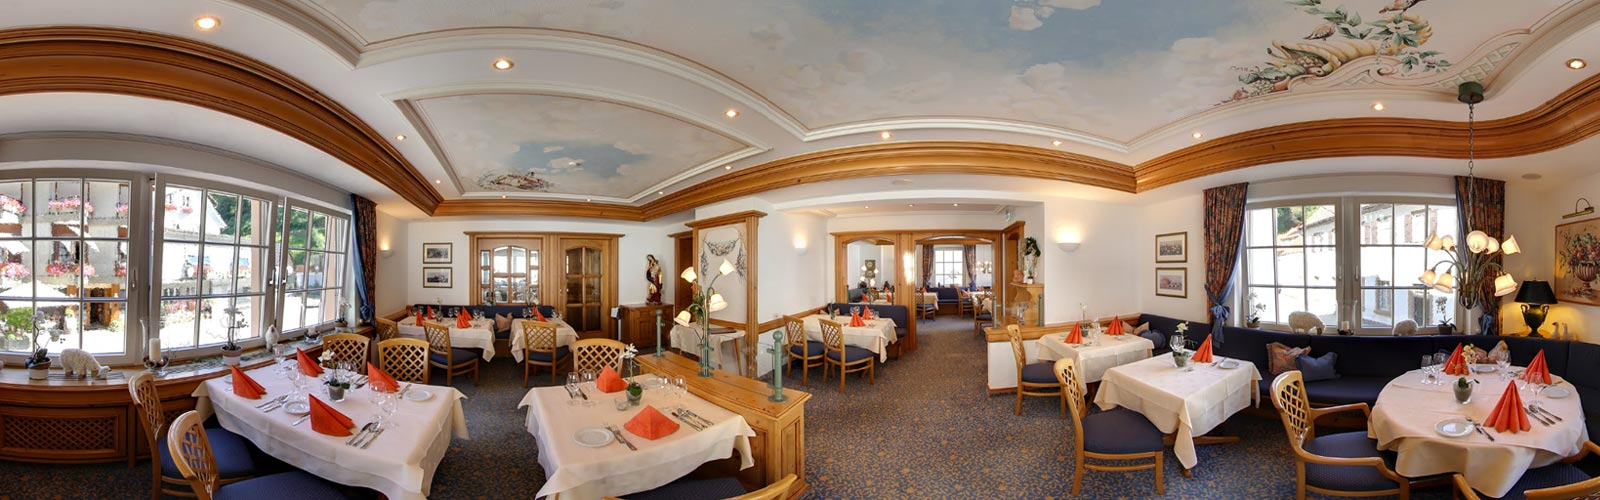 Adlerbad-Flair-Hotel-Panorama-1600x500px